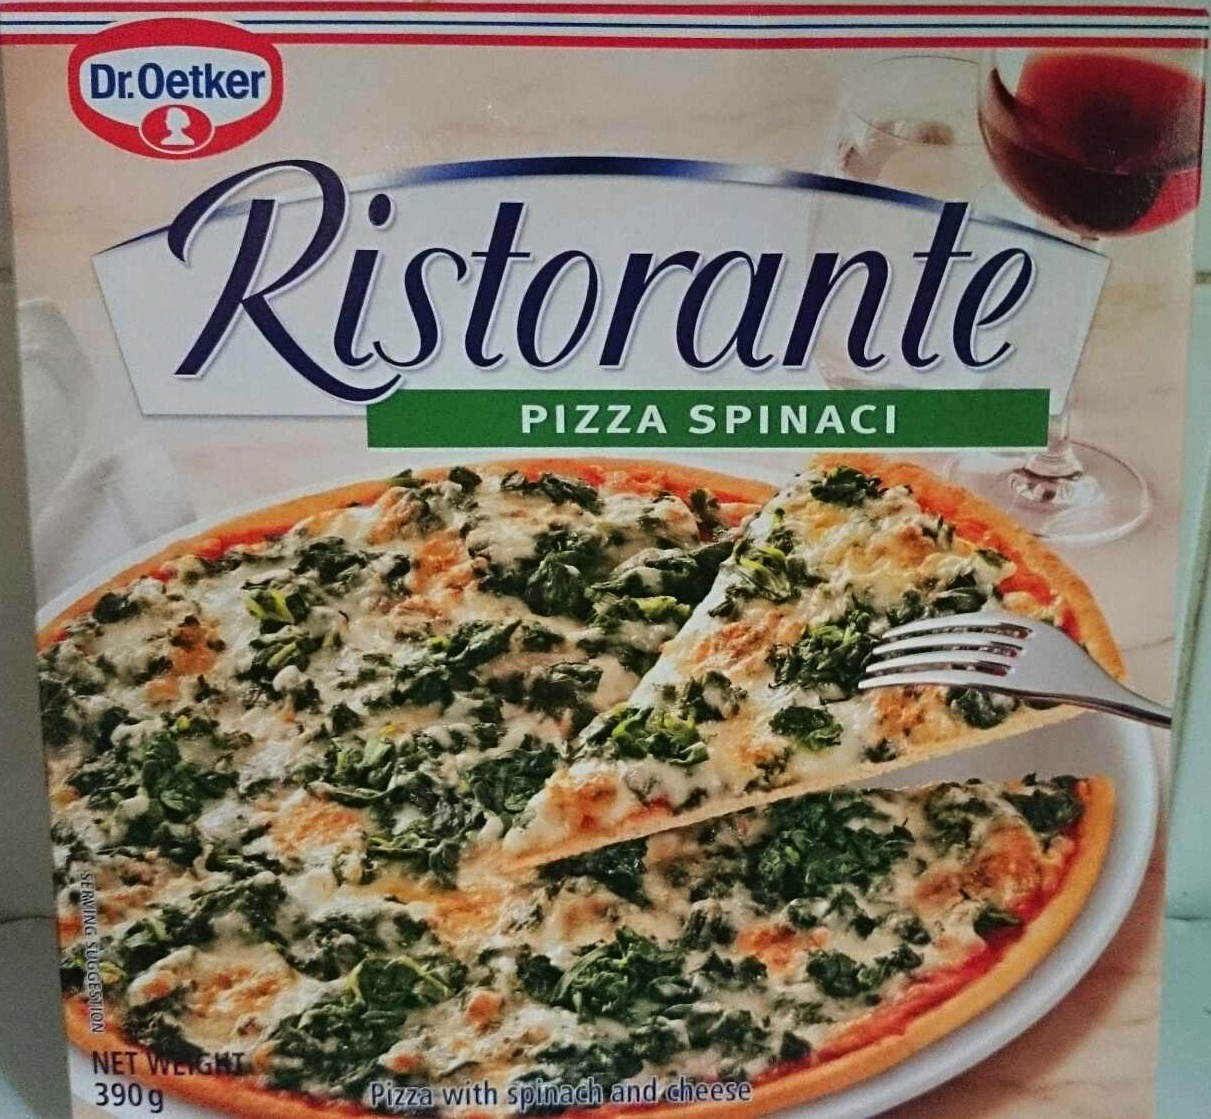 Ristorante Pizza Spinaci - Product - en